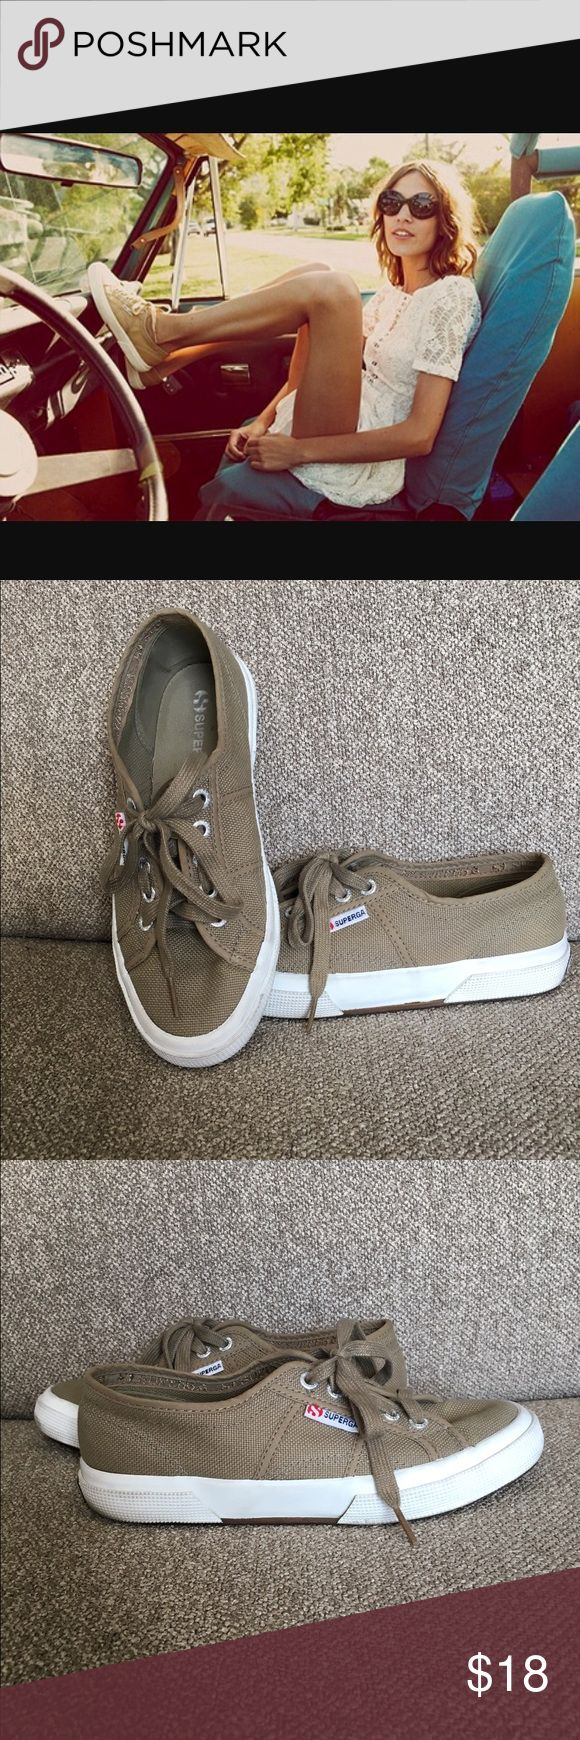 Superga sneakers iceberg green Adorable superga sneakers in size 37.5. Super cute to pair with a dress or jeans Superga Shoes Sneakers